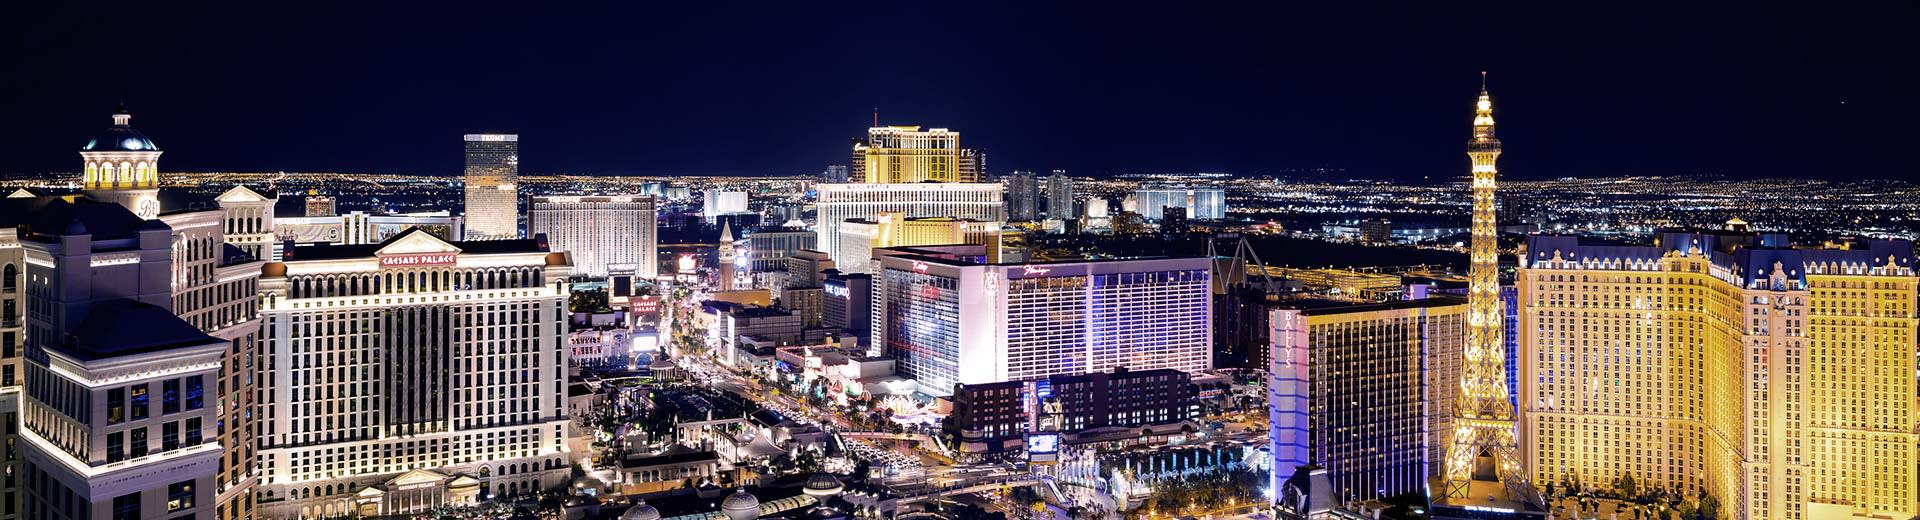 The famous Las Vegas strip lit up at night